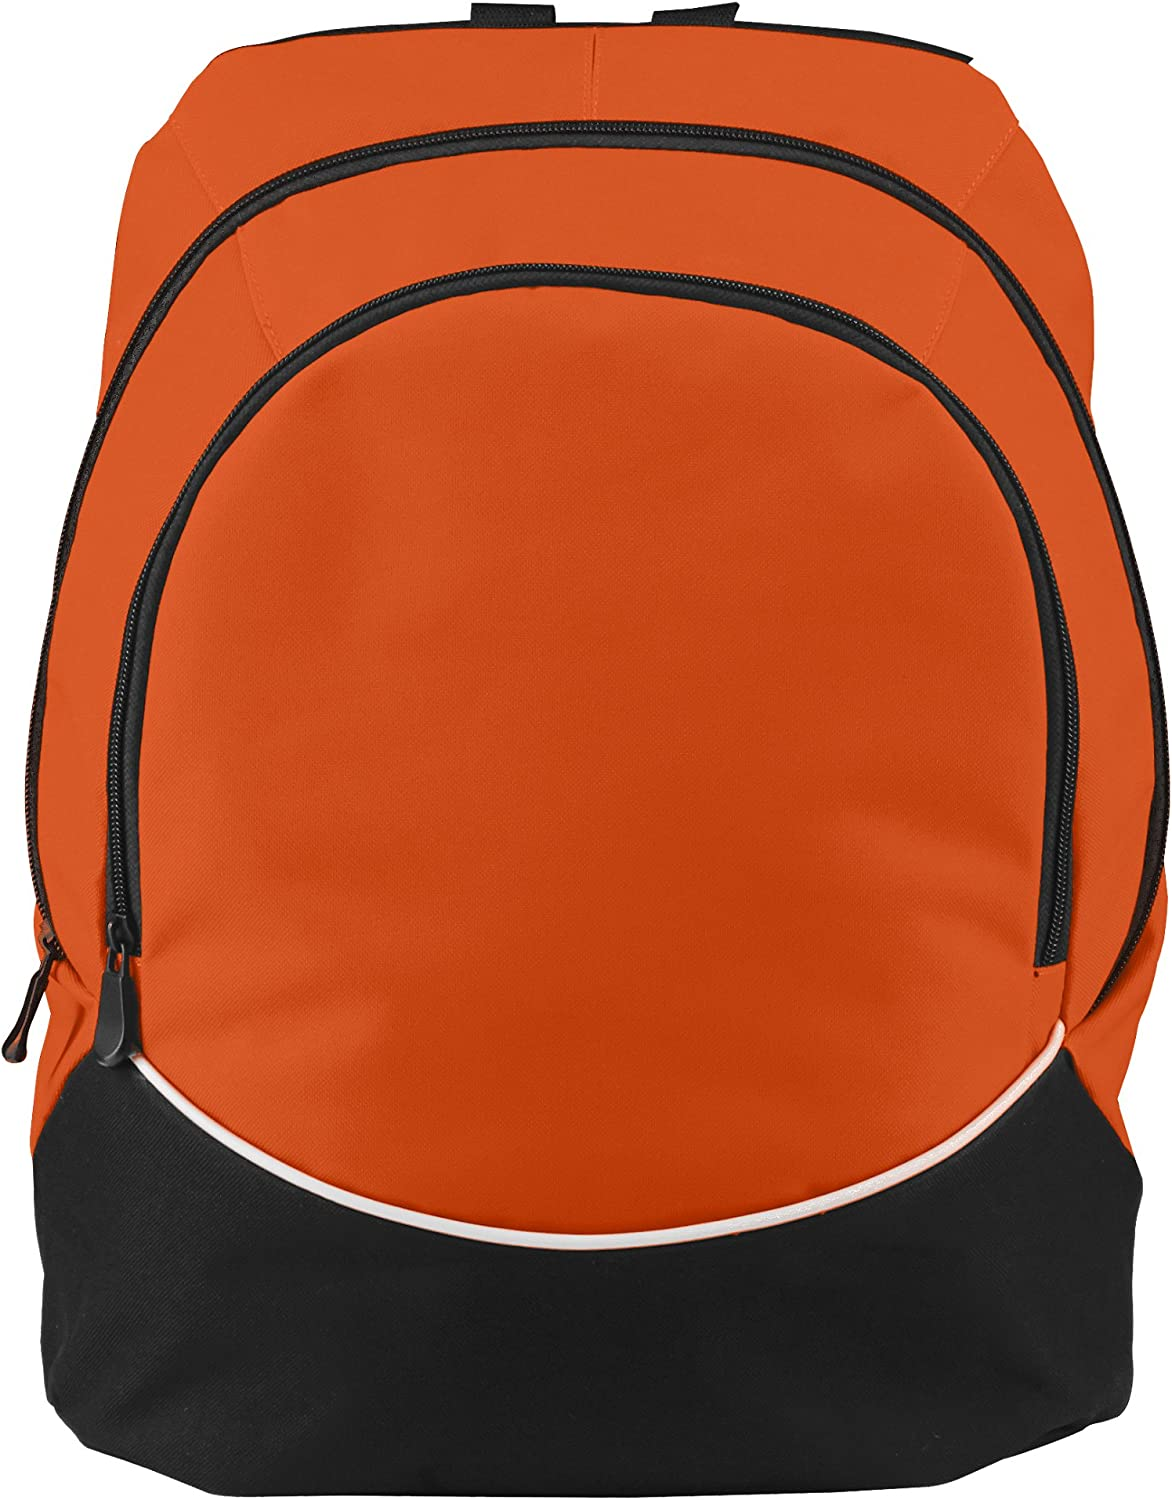 Augusta Sportswear 2021 spring and summer new Austin Mall Large Backpack Tri-Color